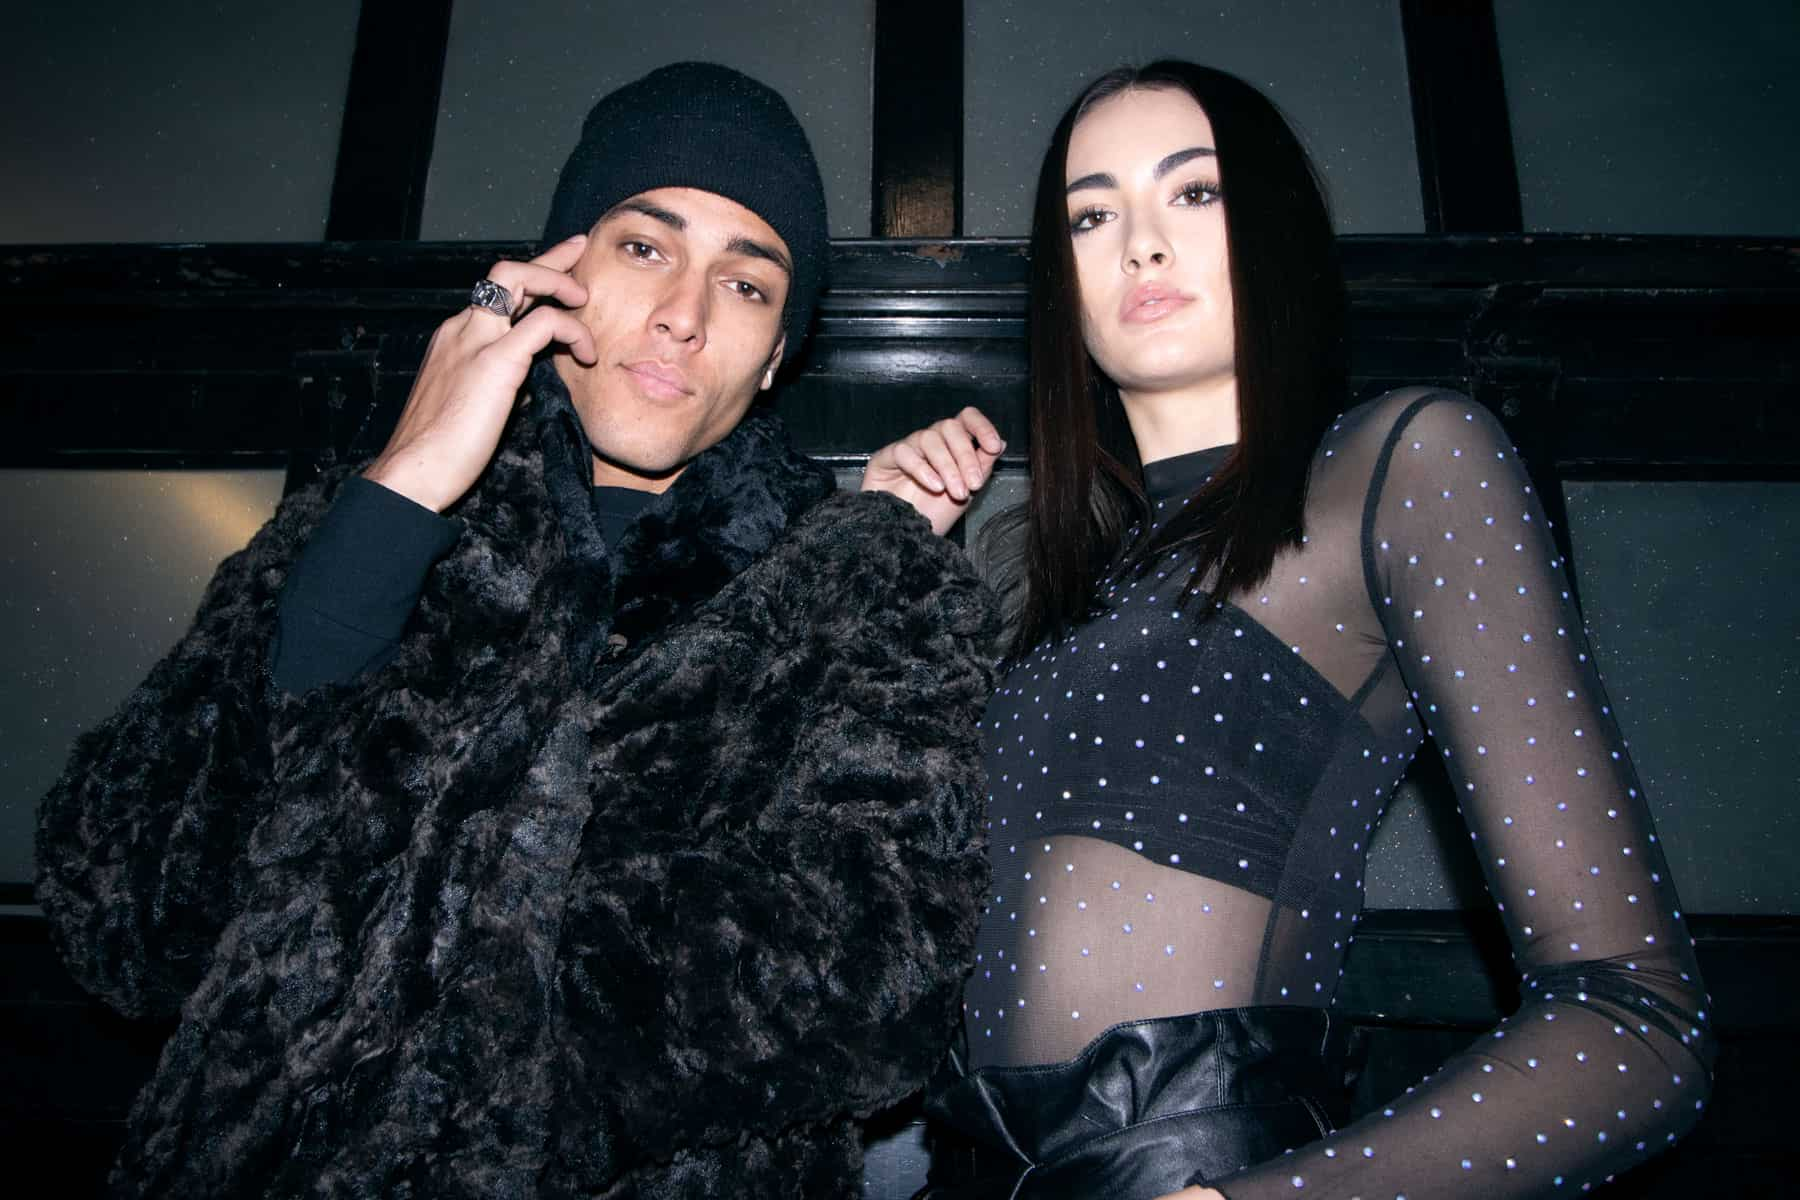 Man and woman wearing faux fur coat and rhinestones